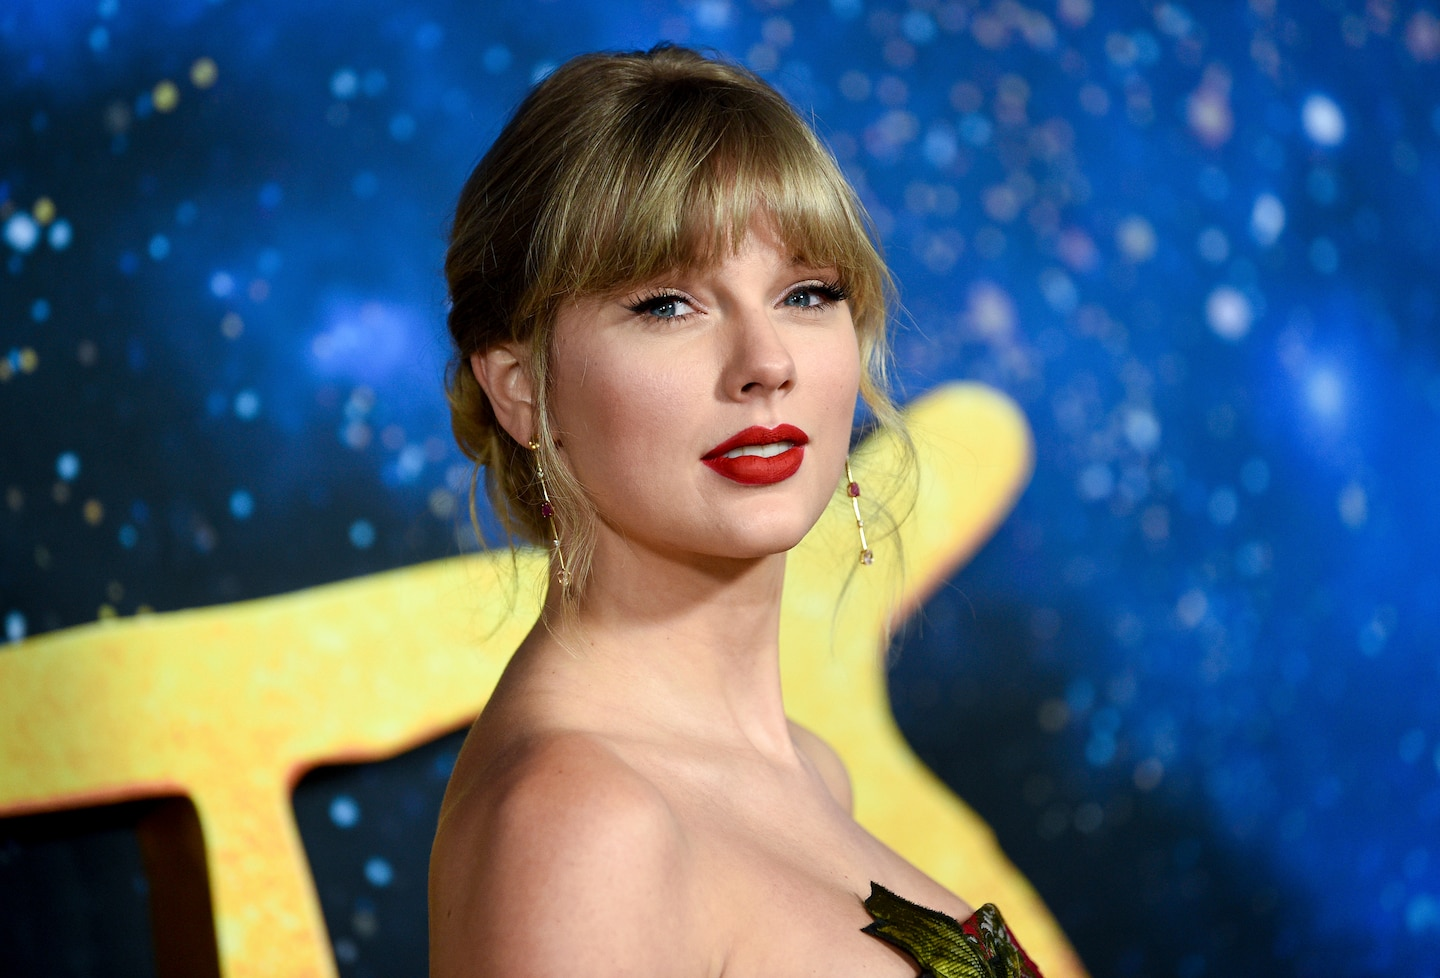 Taylor Swift's 'Folklore': Who is 'Rebekah' on 'The Last Great American Dynasty'?